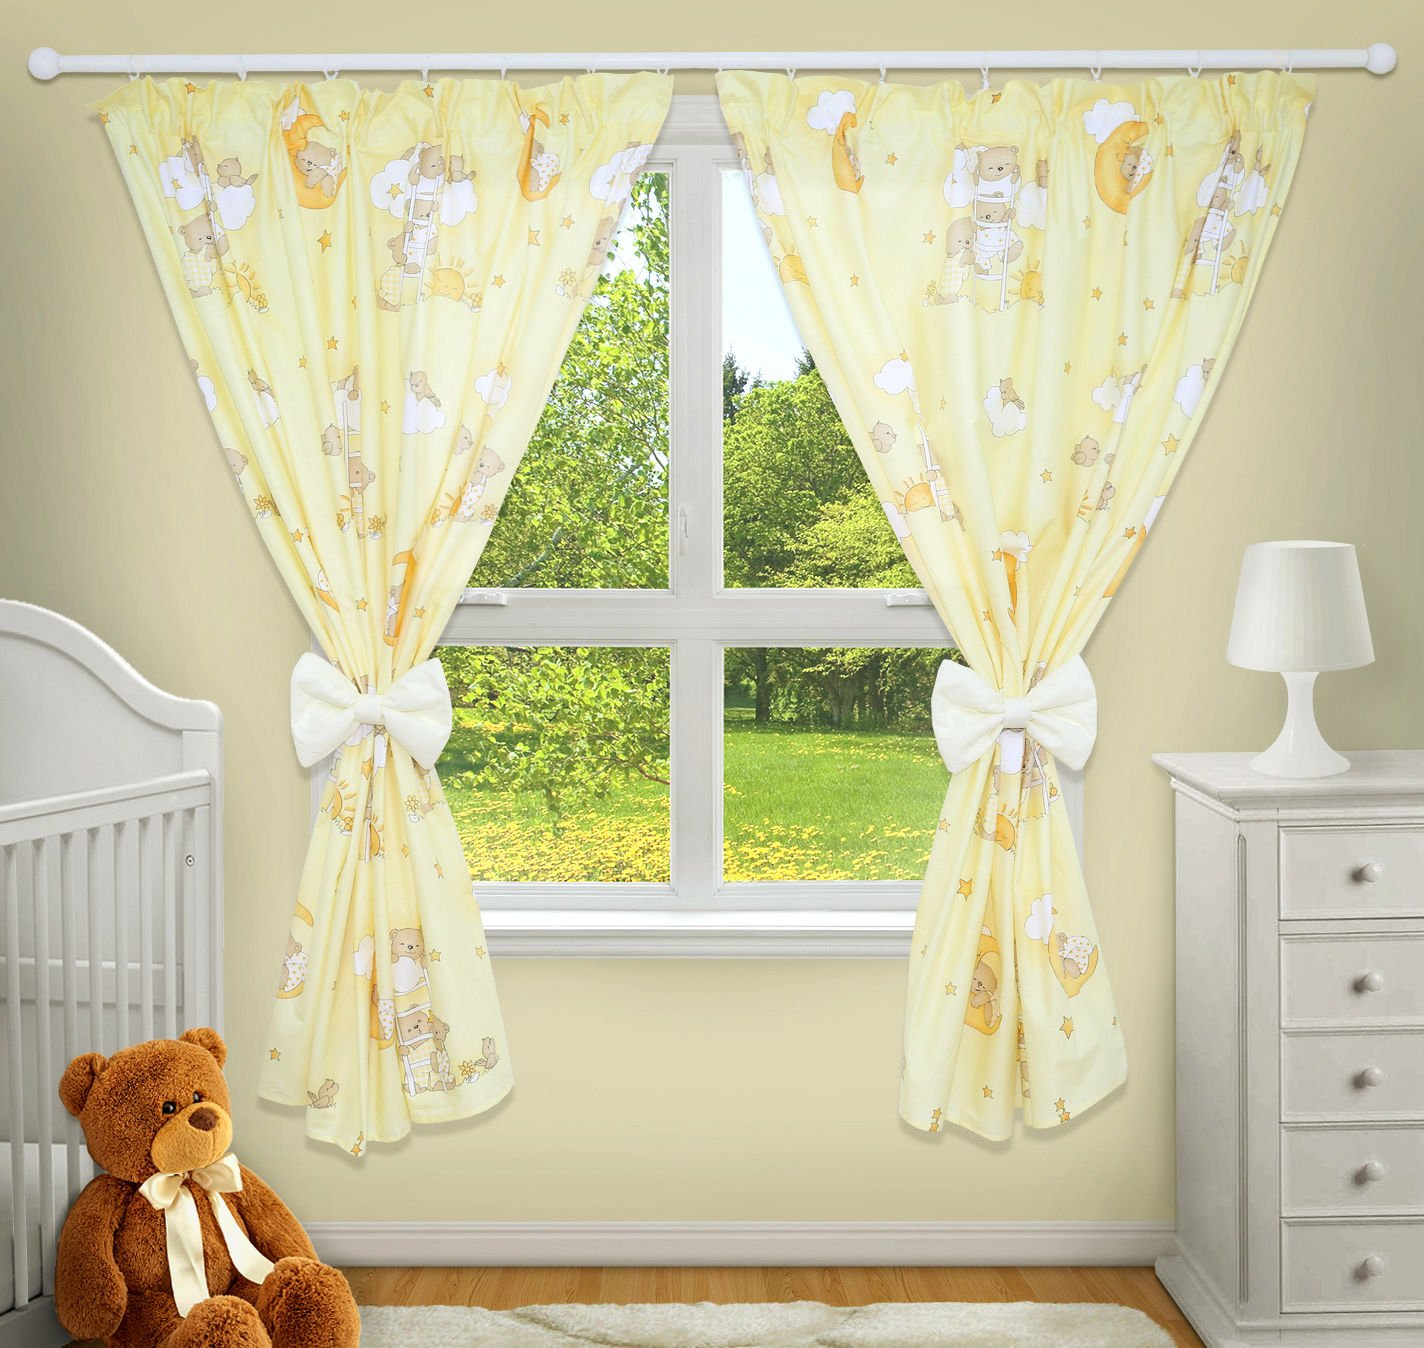 LUXURY DECORATIVE CURTAINS FOR BABY ROOM MATCHING WITH OUR NURSERY BEDDING SETS Dots grey